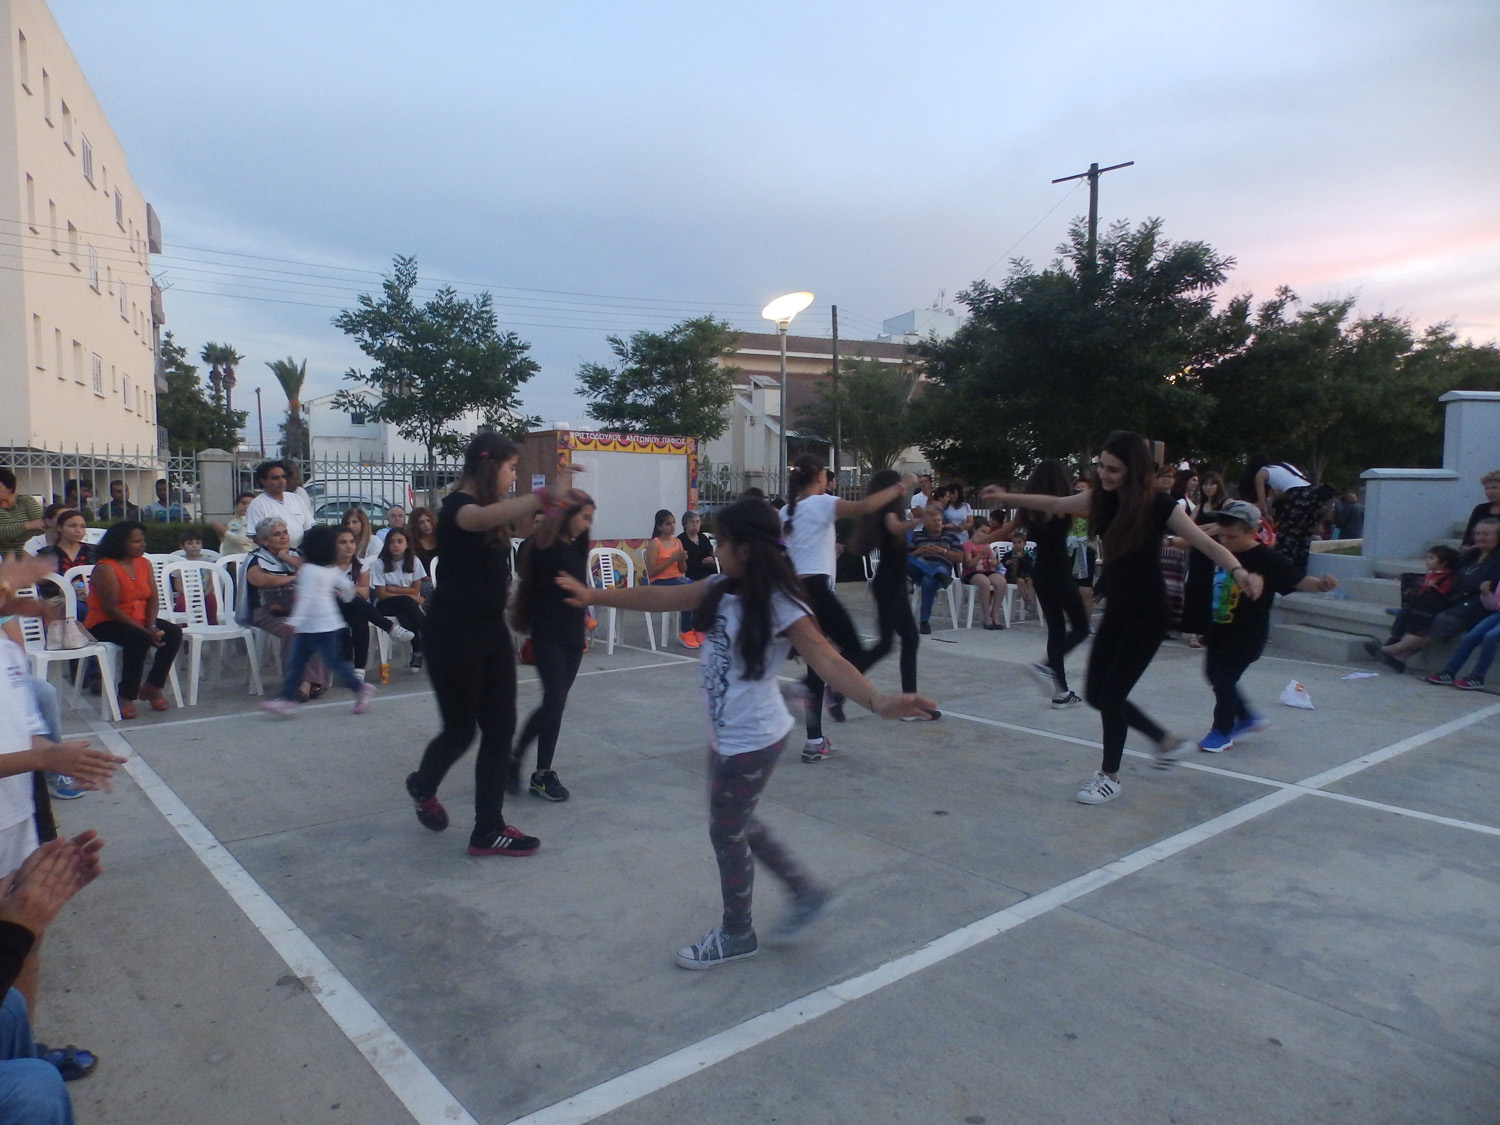 multicultural_Childrens_Festival_Ayios_Dhometios28516_33